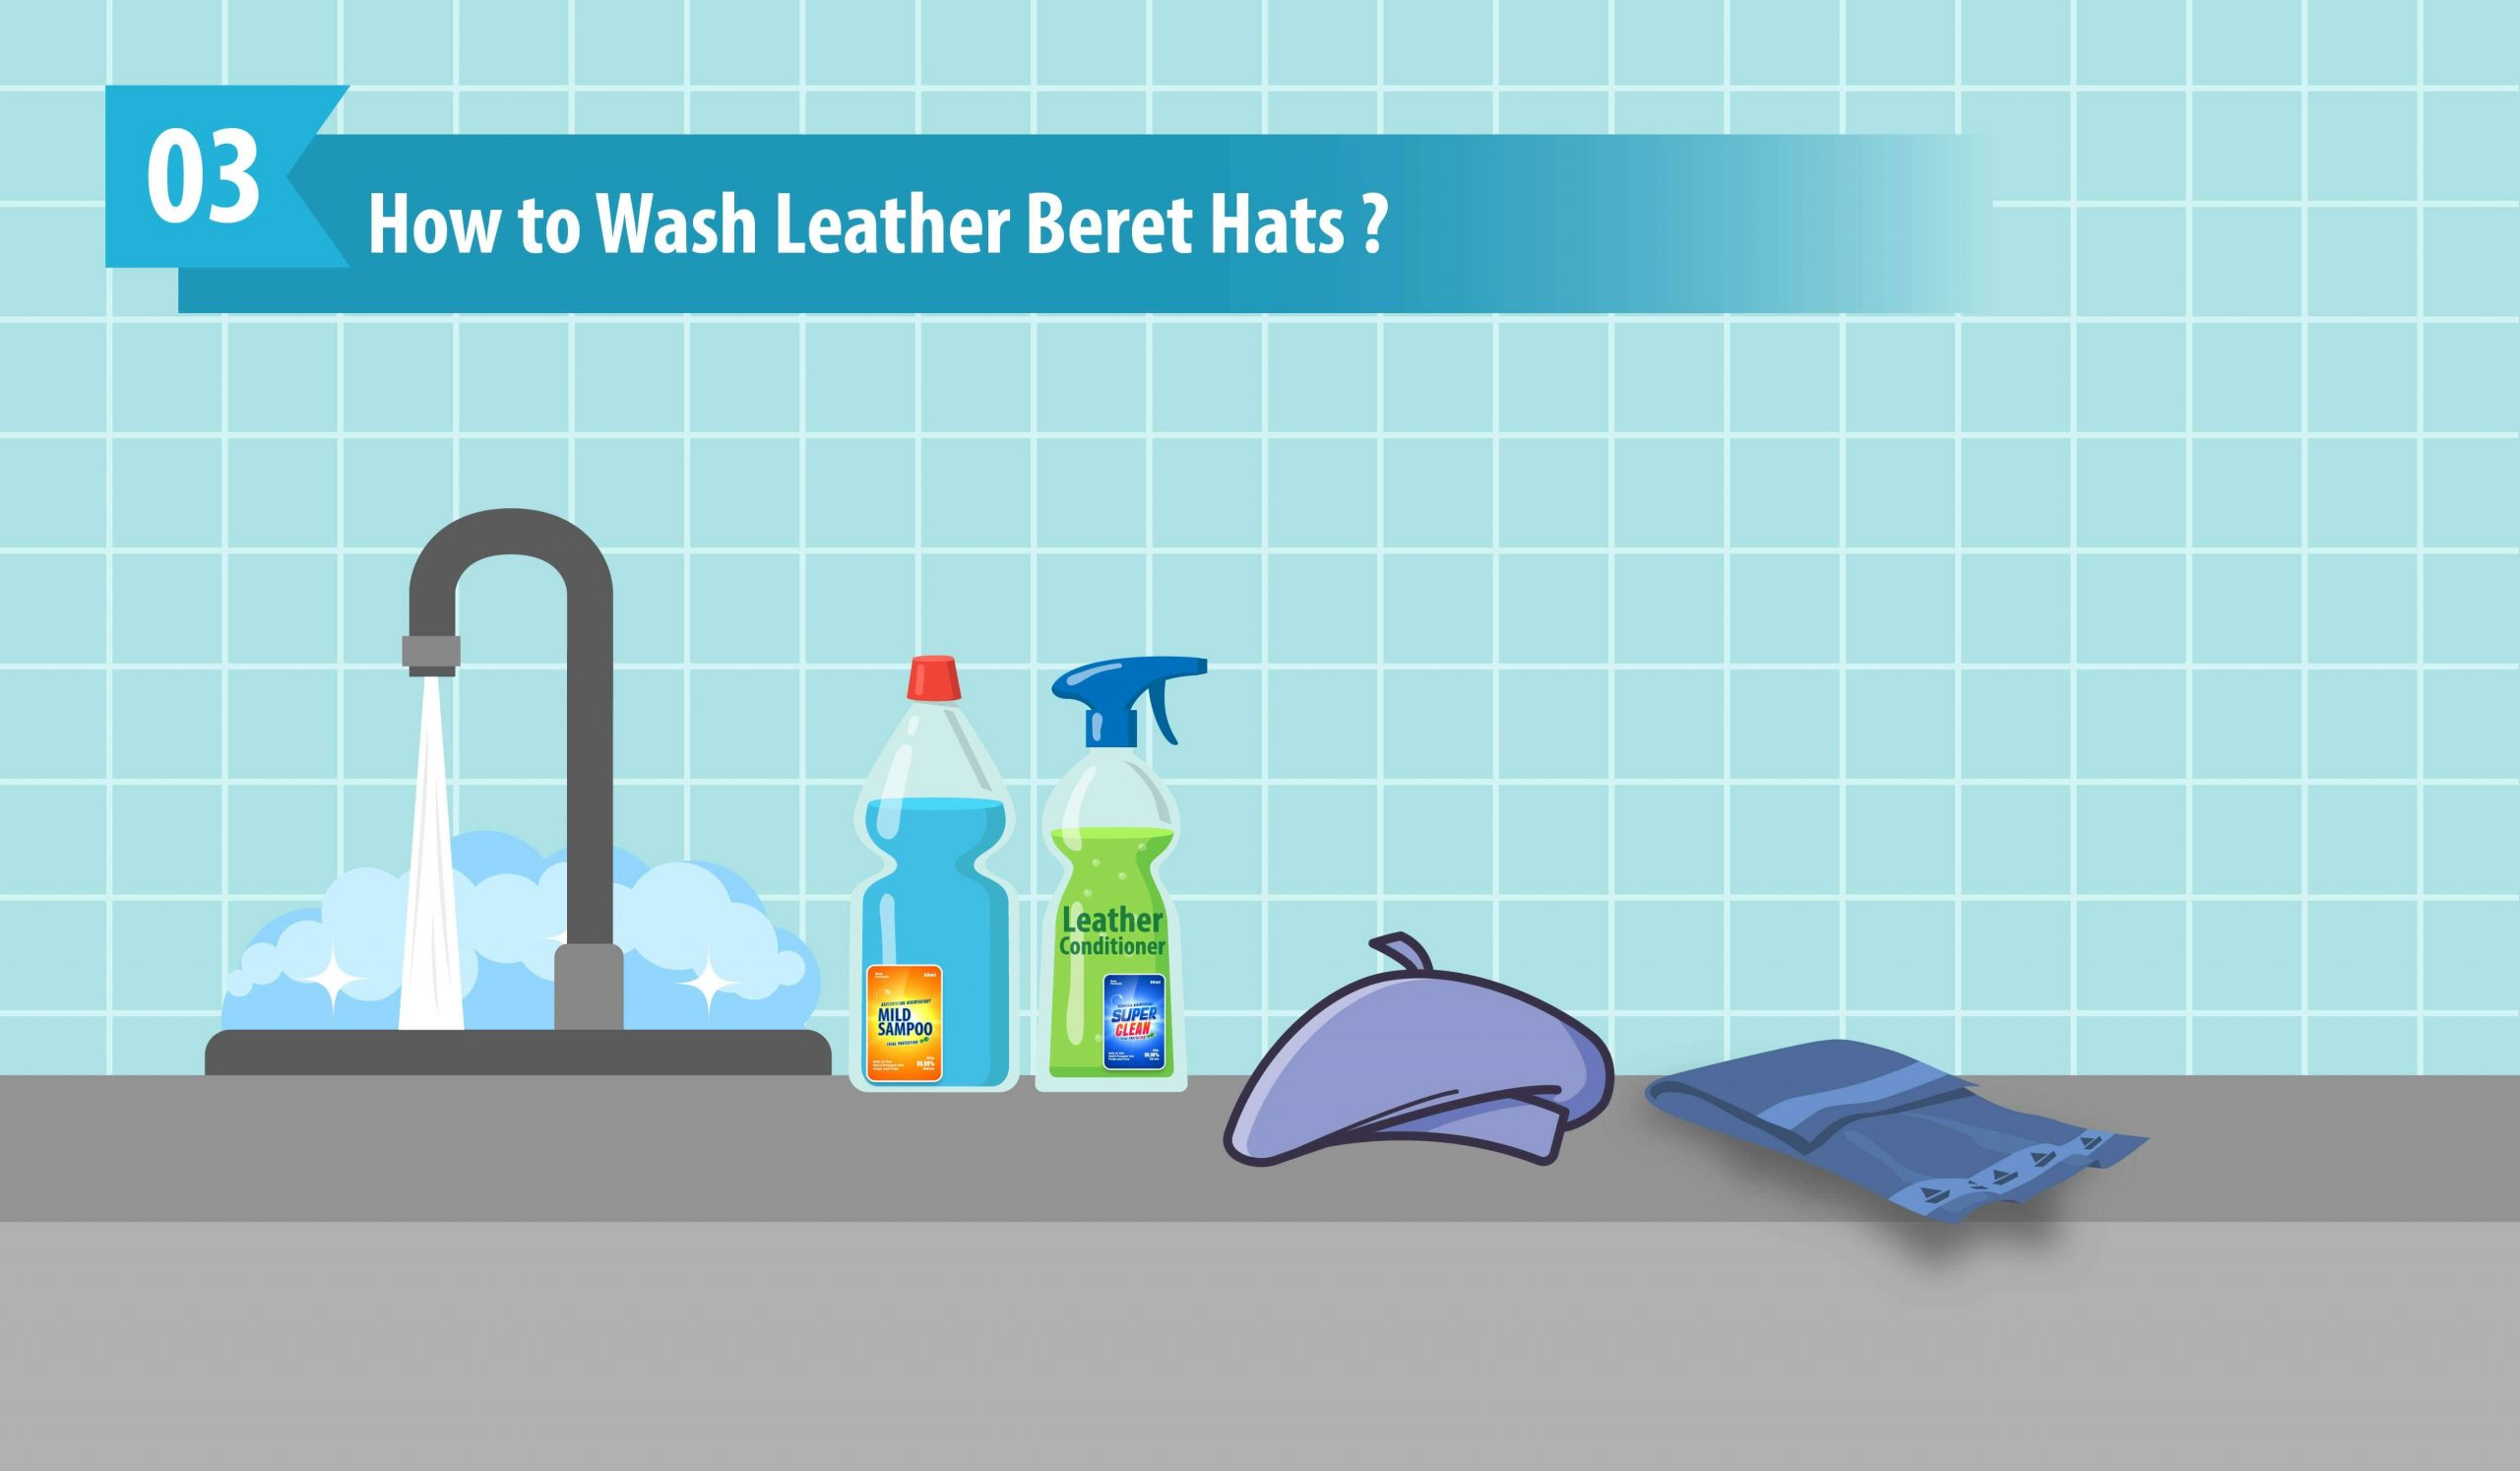 How to Wash Leather Beret Hats